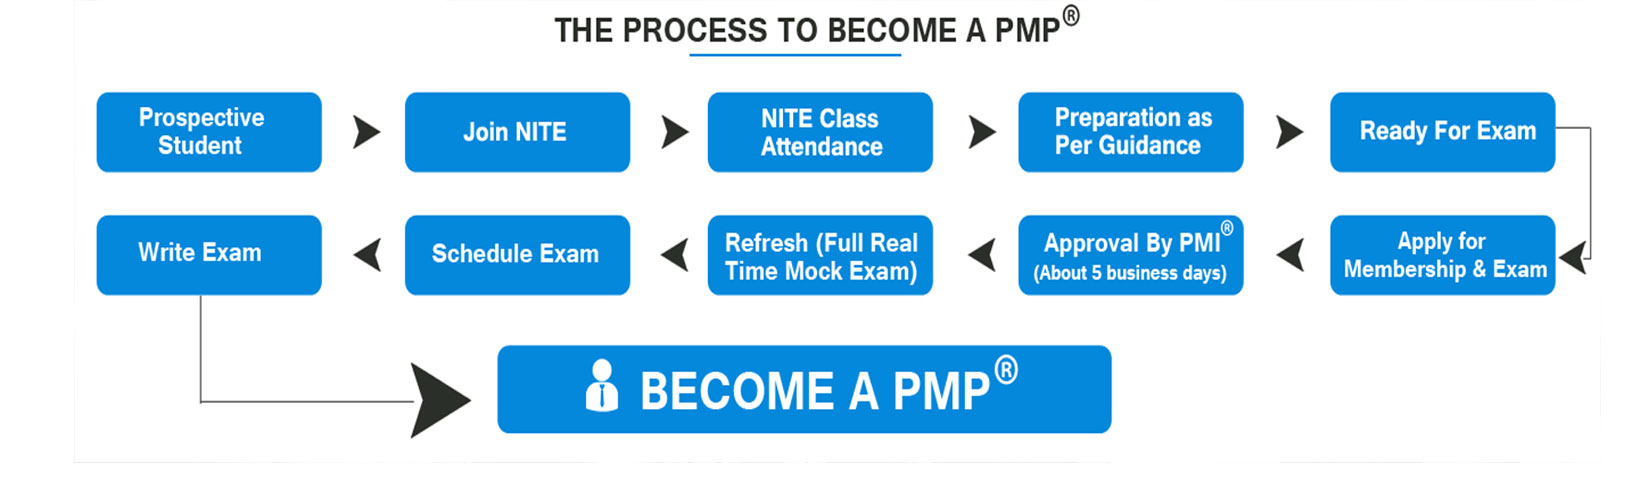 Become a PMP